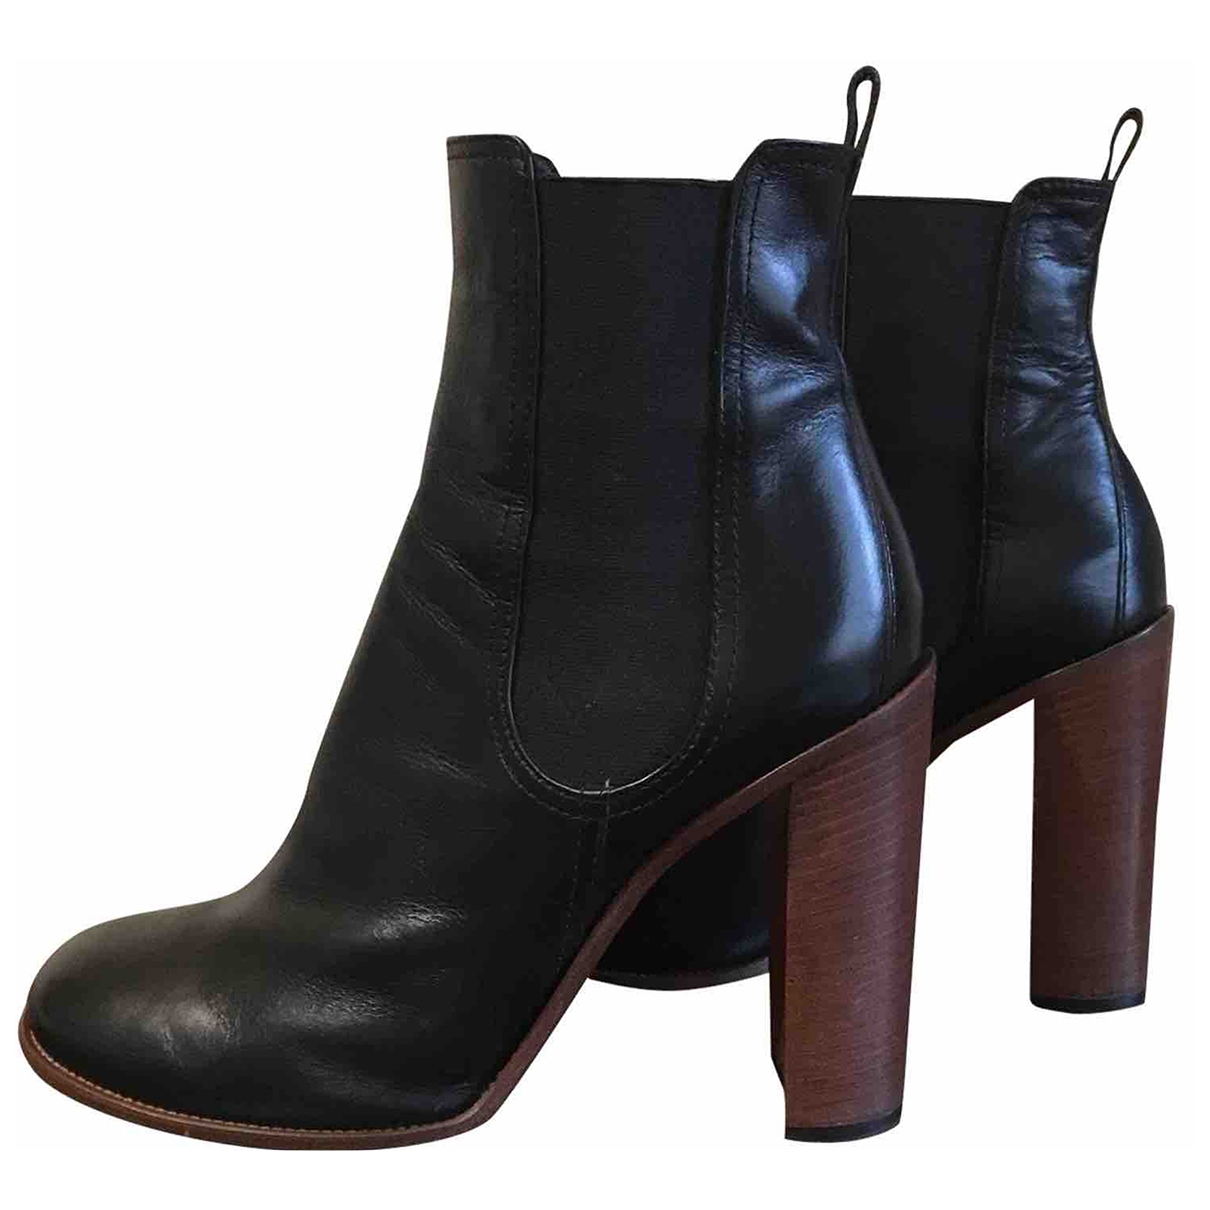 Celine \N Black Leather Ankle boots for Women 39.5 EU